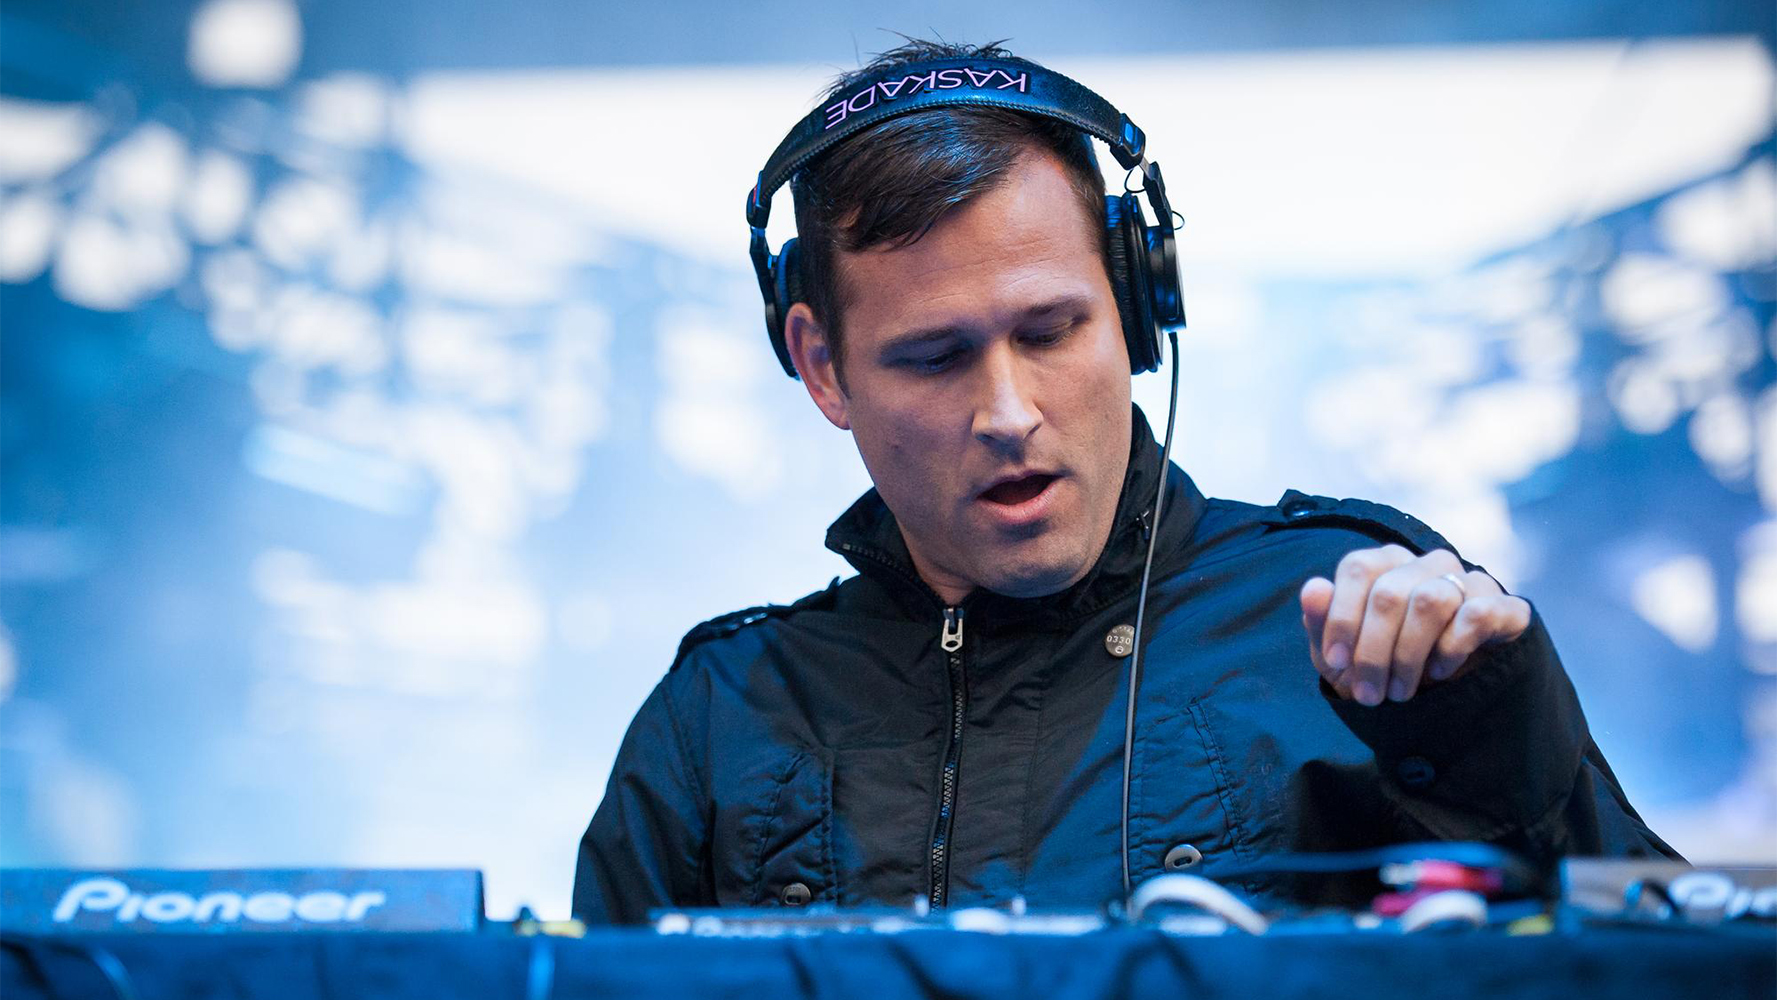 Celebrate The Birthday Of Kaskade With His Top 10 Tracks!